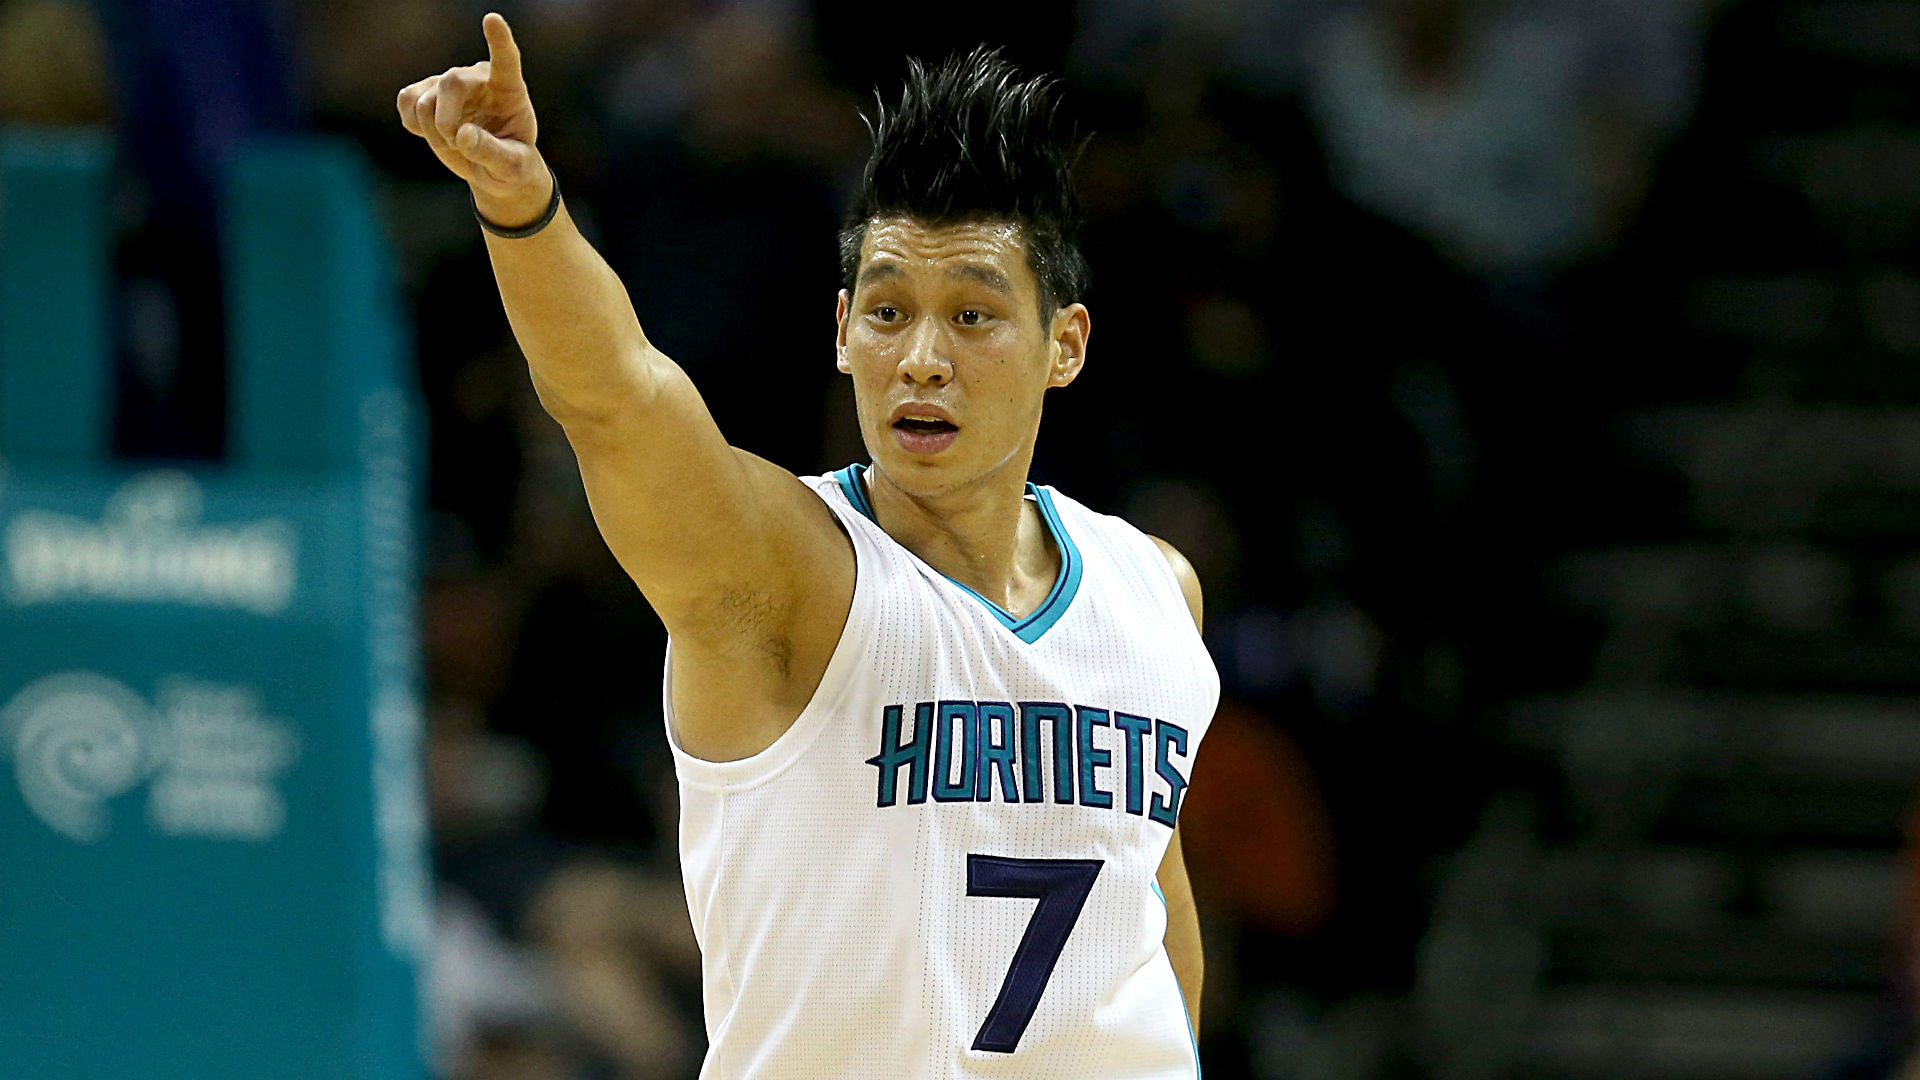 Why wasn't Jeremy Lin drafted by an NBA team after college?